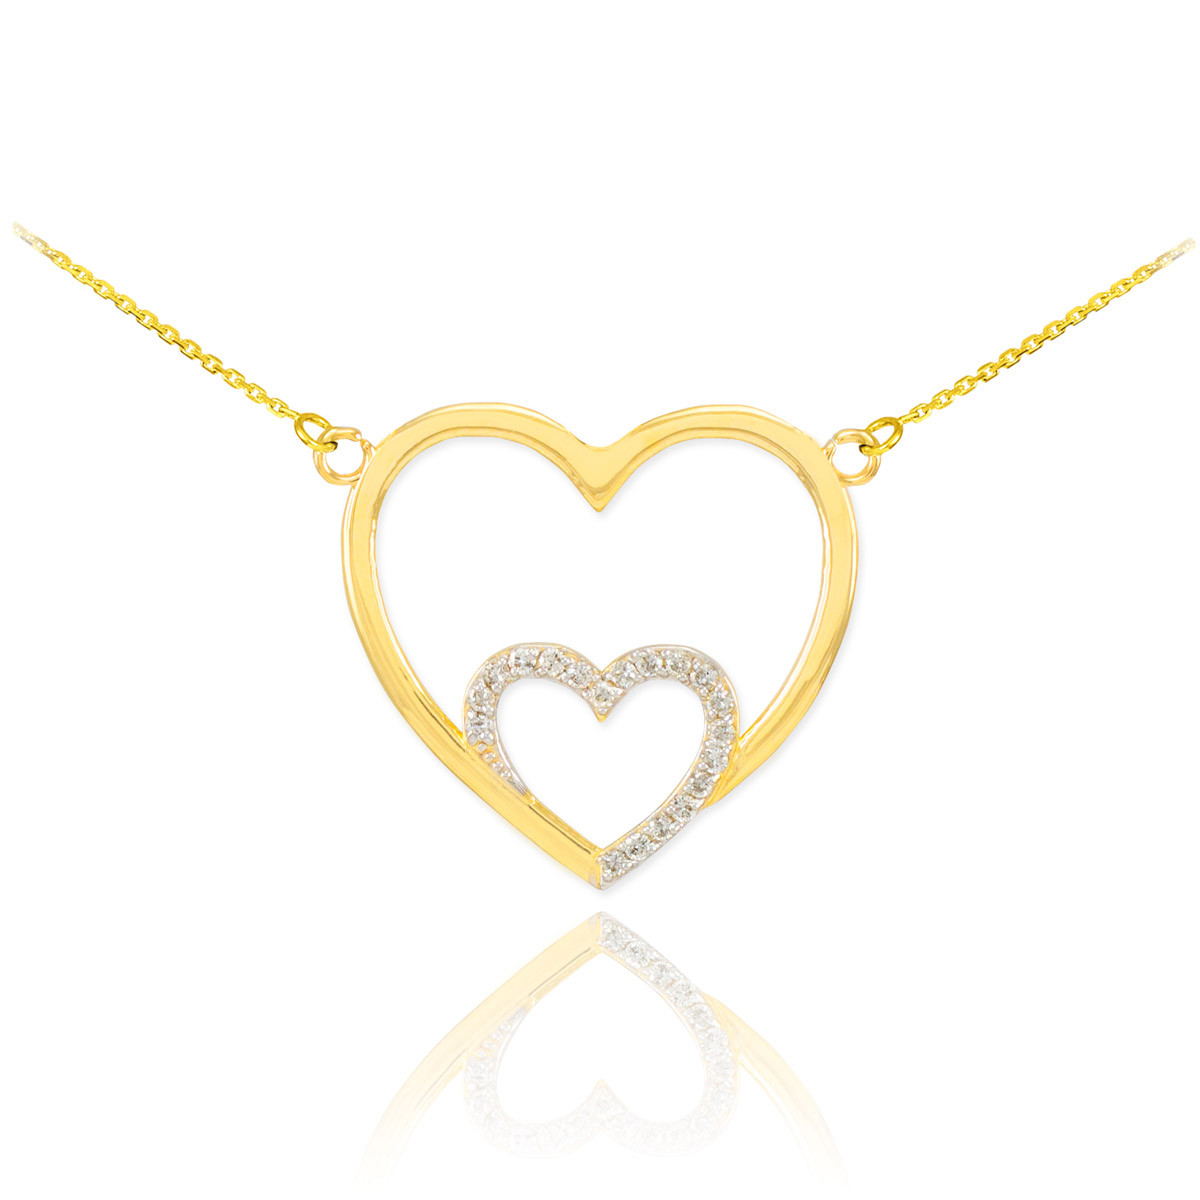 Diamond double heart pendant necklace in 9ct gold gold boutique diamond pendant necklace in solid 9ct yellow gold gb57106y 614 instock httpsgoldboutiquediamond double heart pendant necklace in gold gb57106y mozeypictures Choice Image